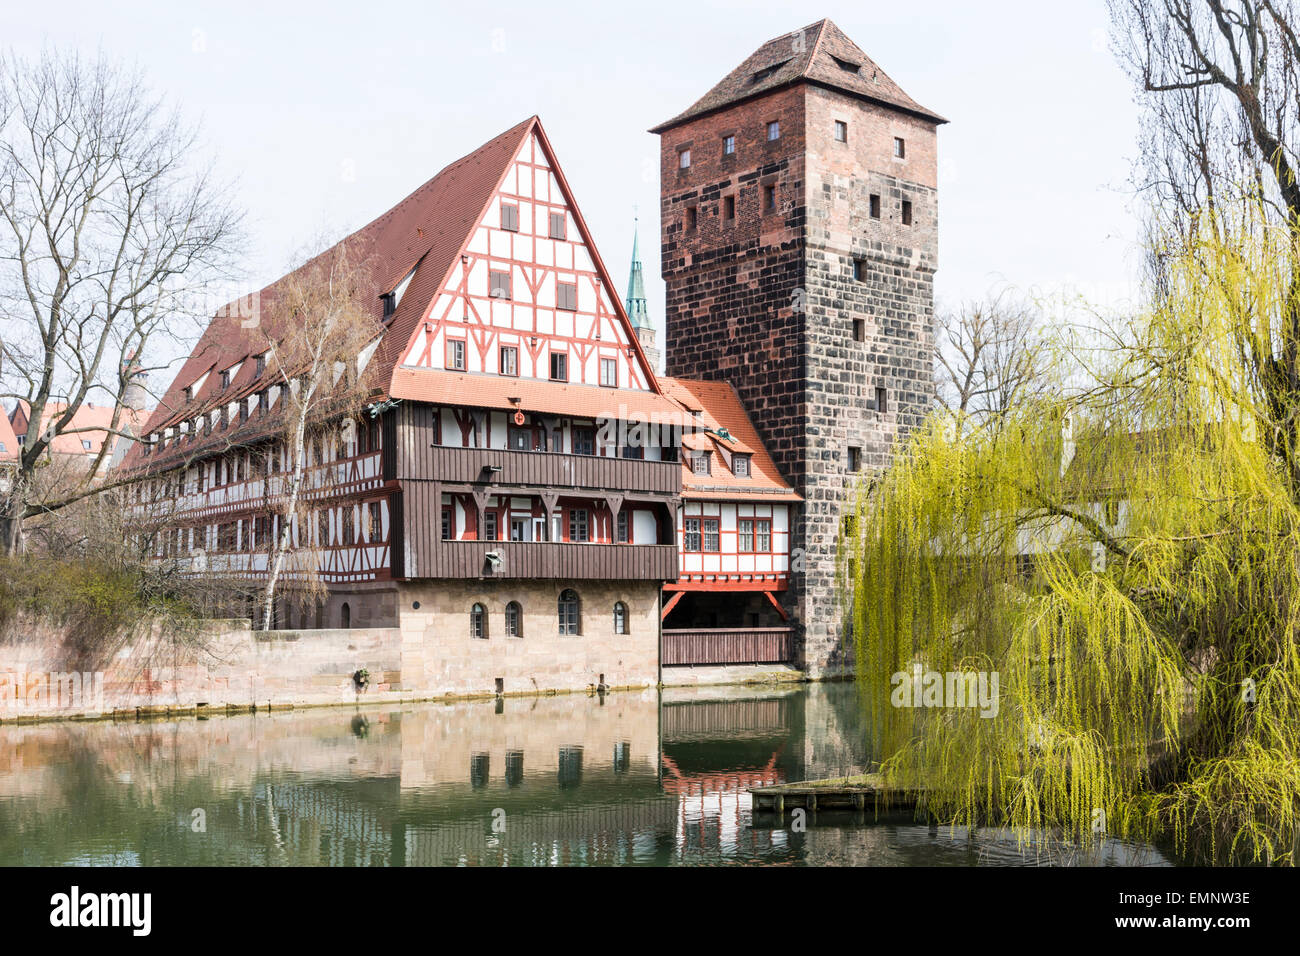 The Wasserturm (water tower, built 13th century)  and the Weinstadl (Former Wine Depot, built 15th century) - medieval - Stock Image